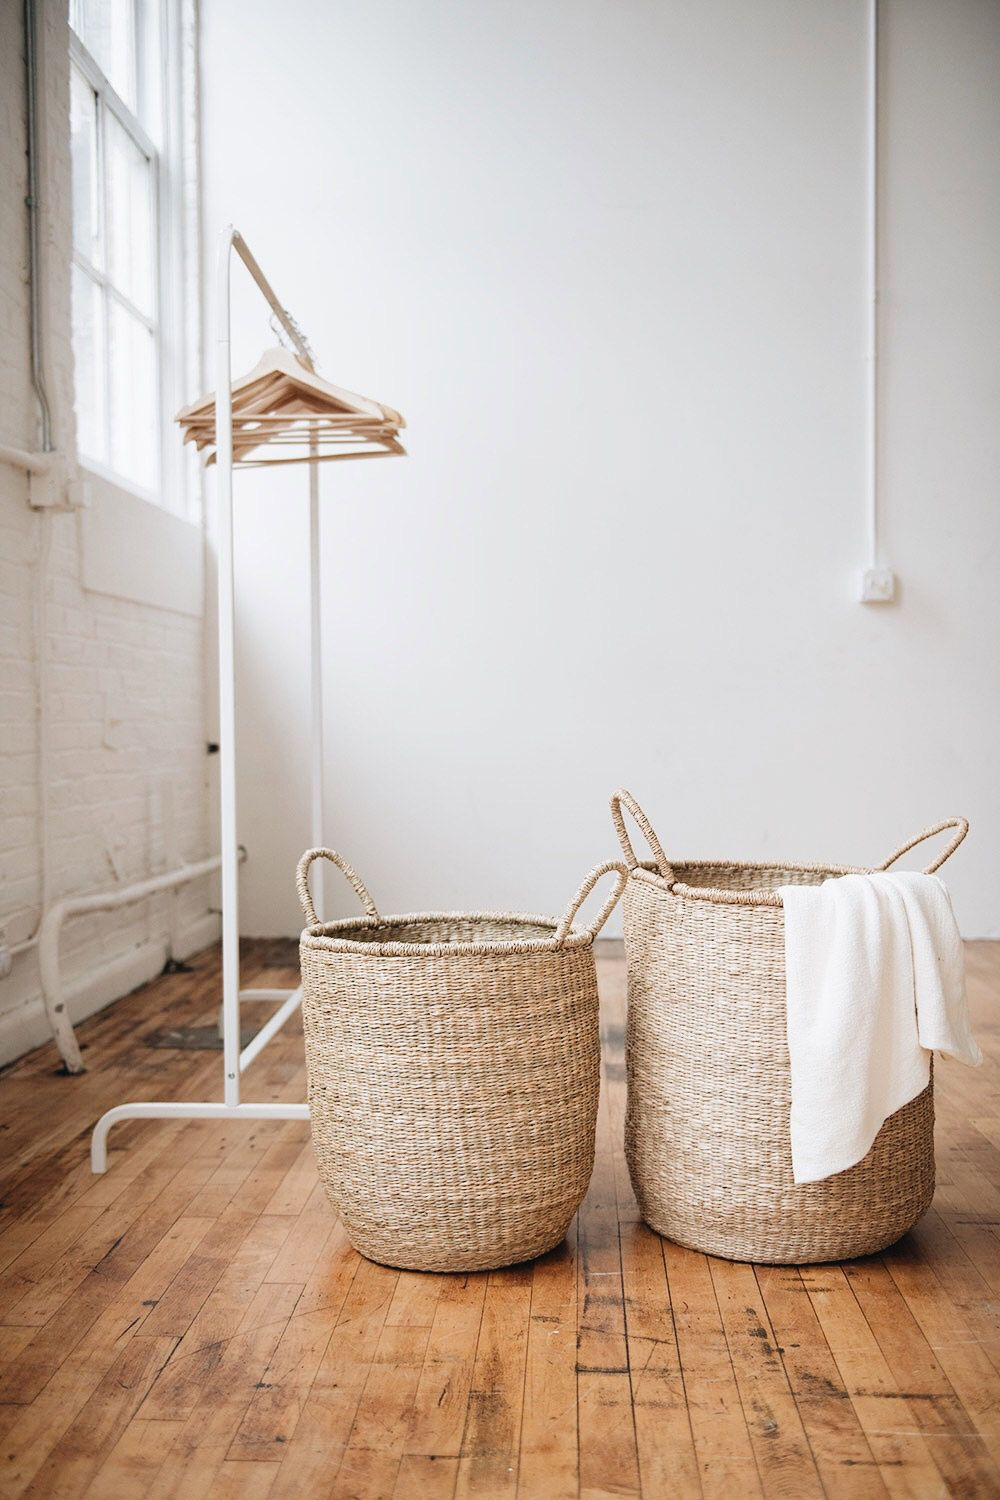 Laundry Day Made Better Woven Baskets Storage Ethical Homewares